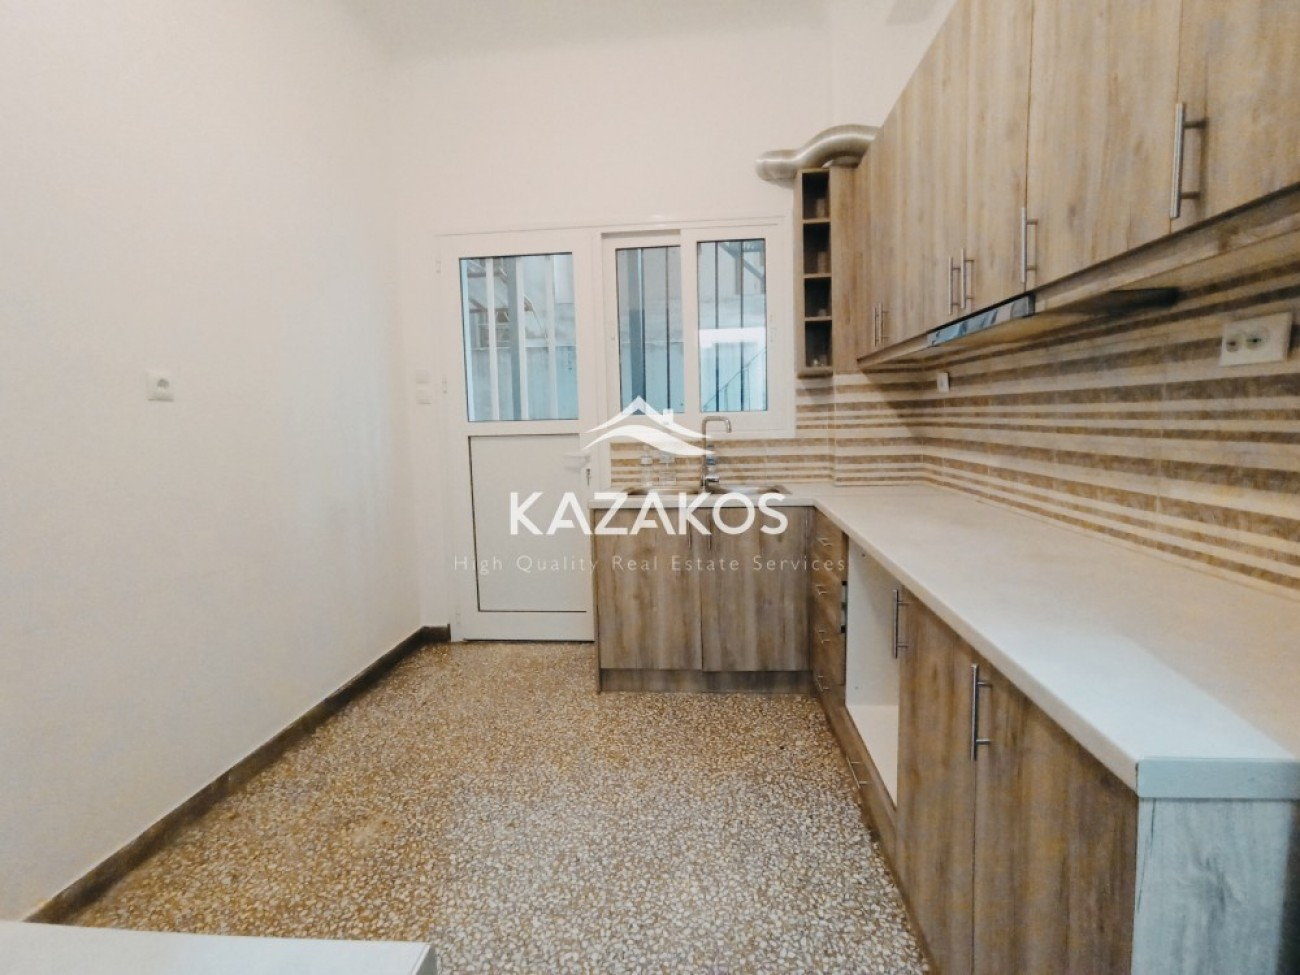 Apartment for Rent in Zwgrafou, Central & South Region of Athens, Greece